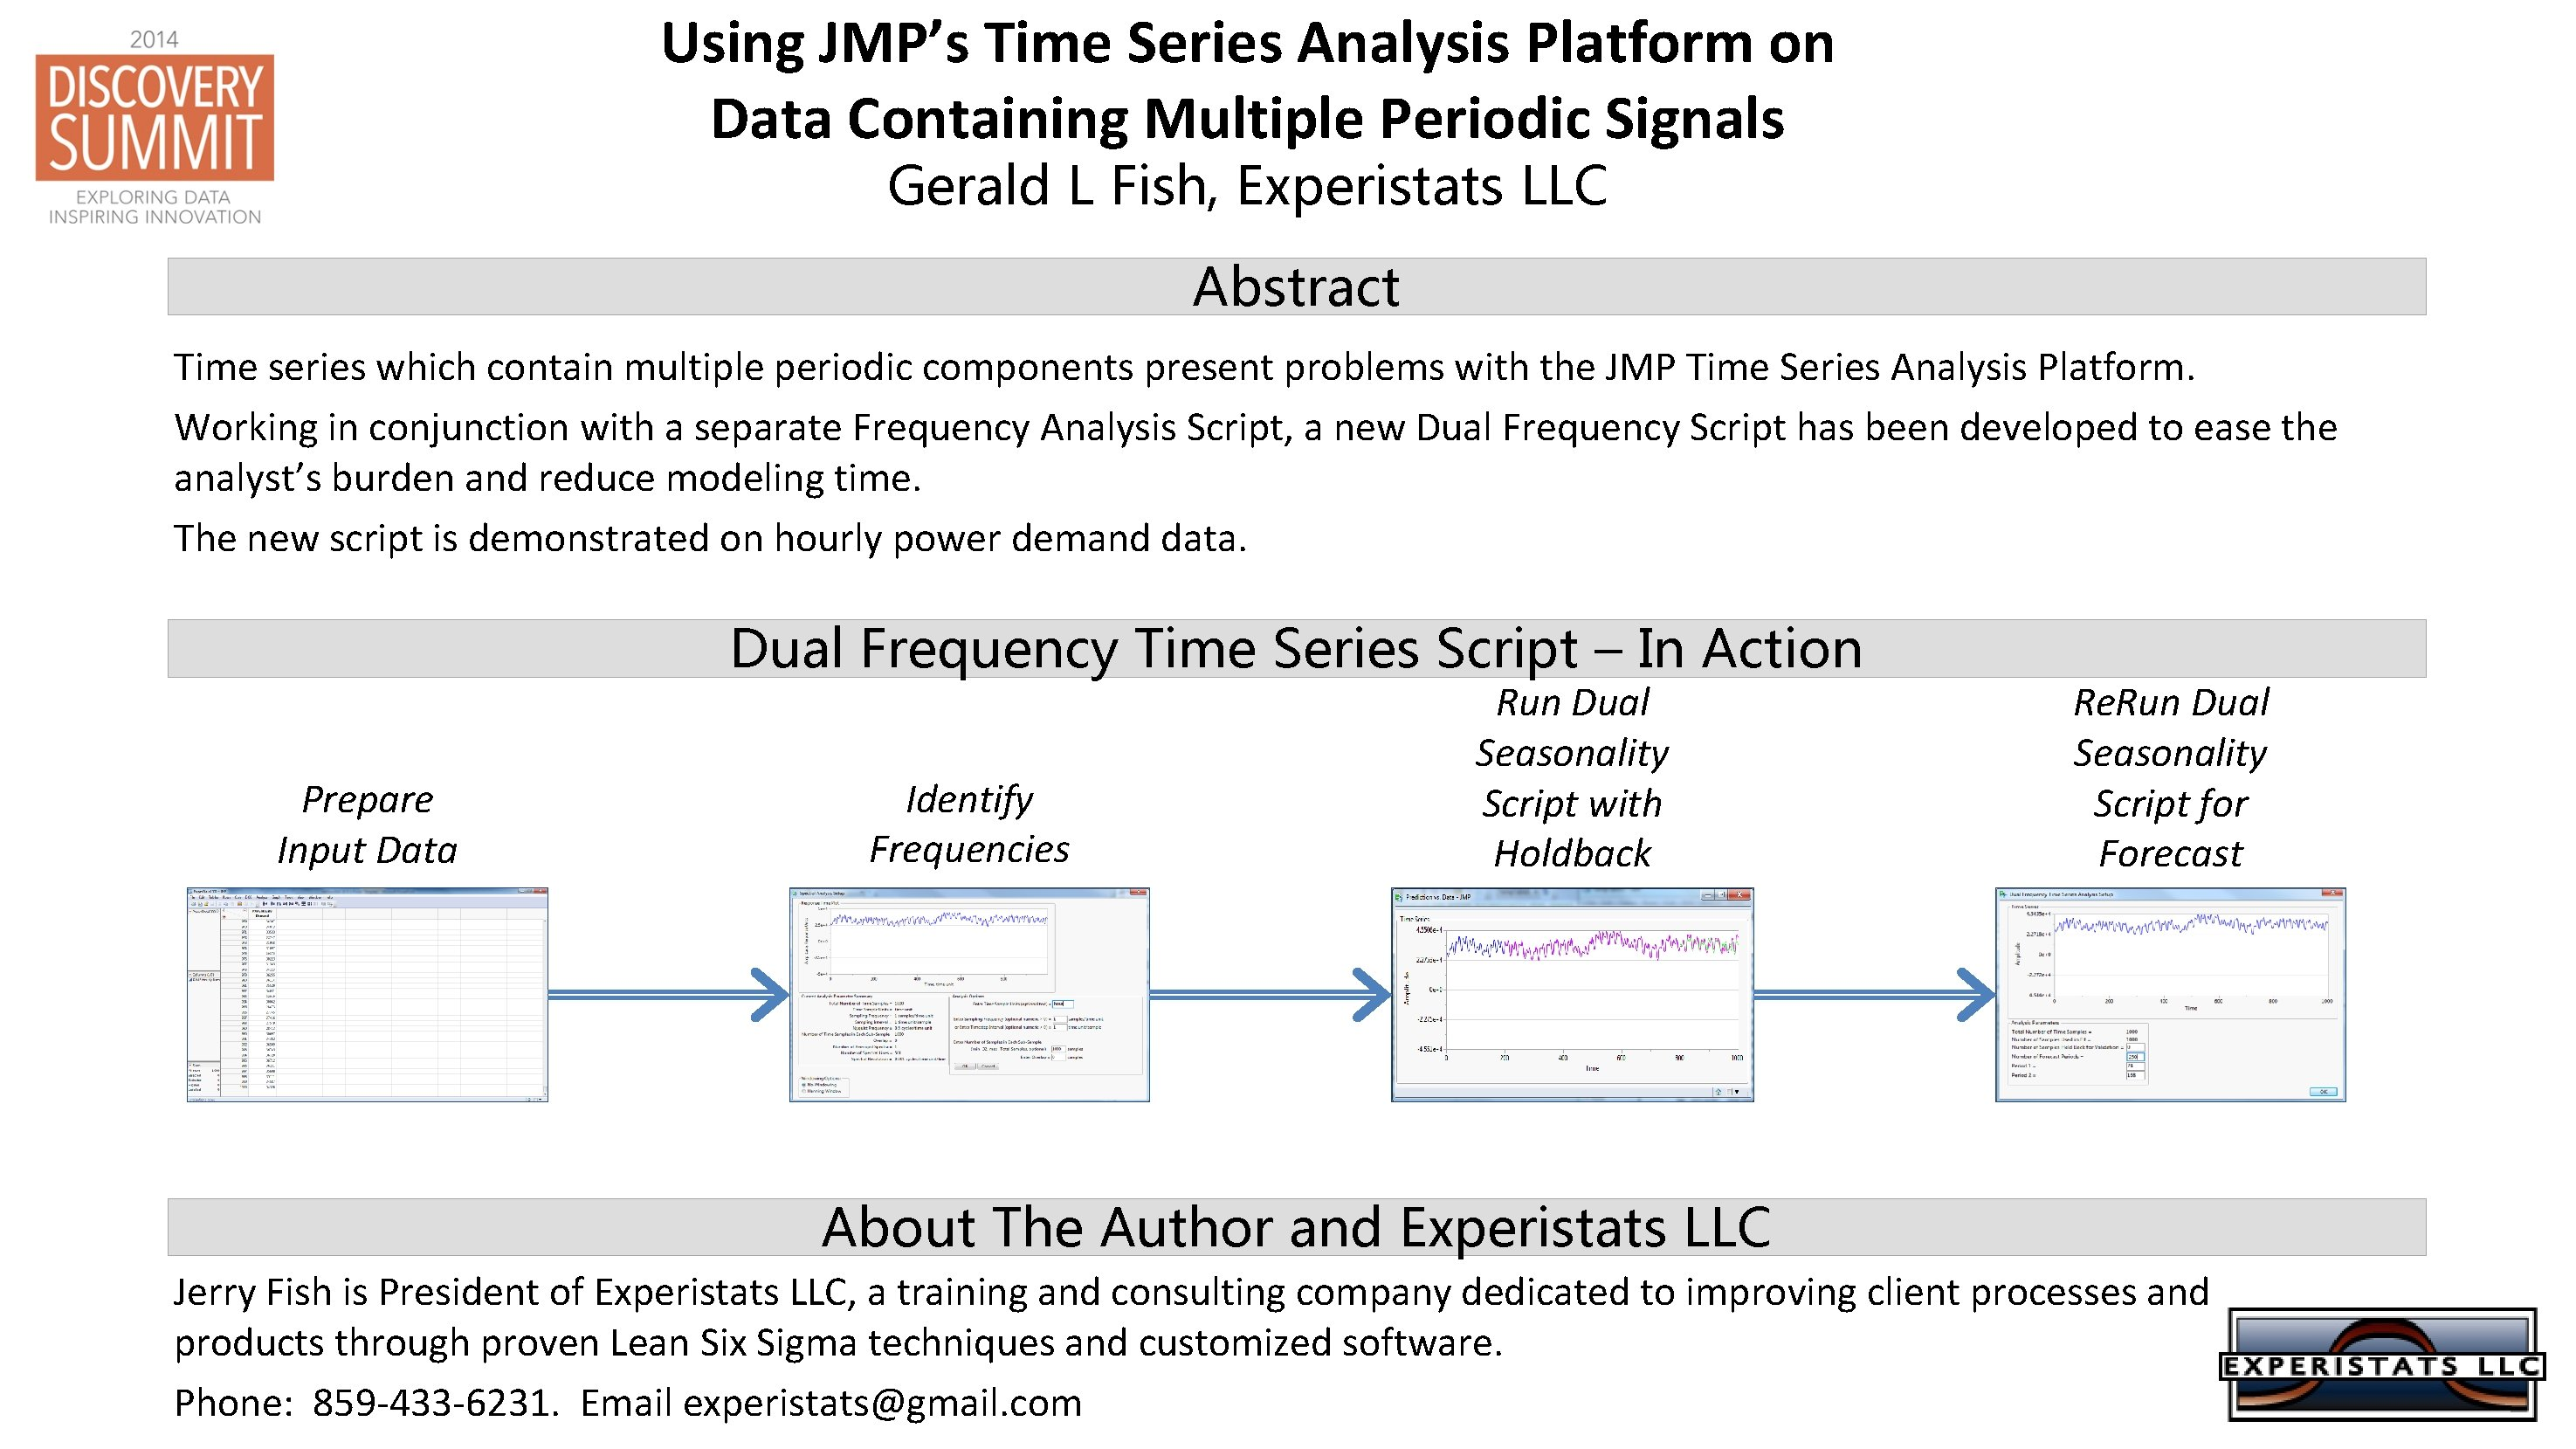 Using JMP's Time Series Analysis Platform on Data Containing Multiple Periodic Signals Gerald L